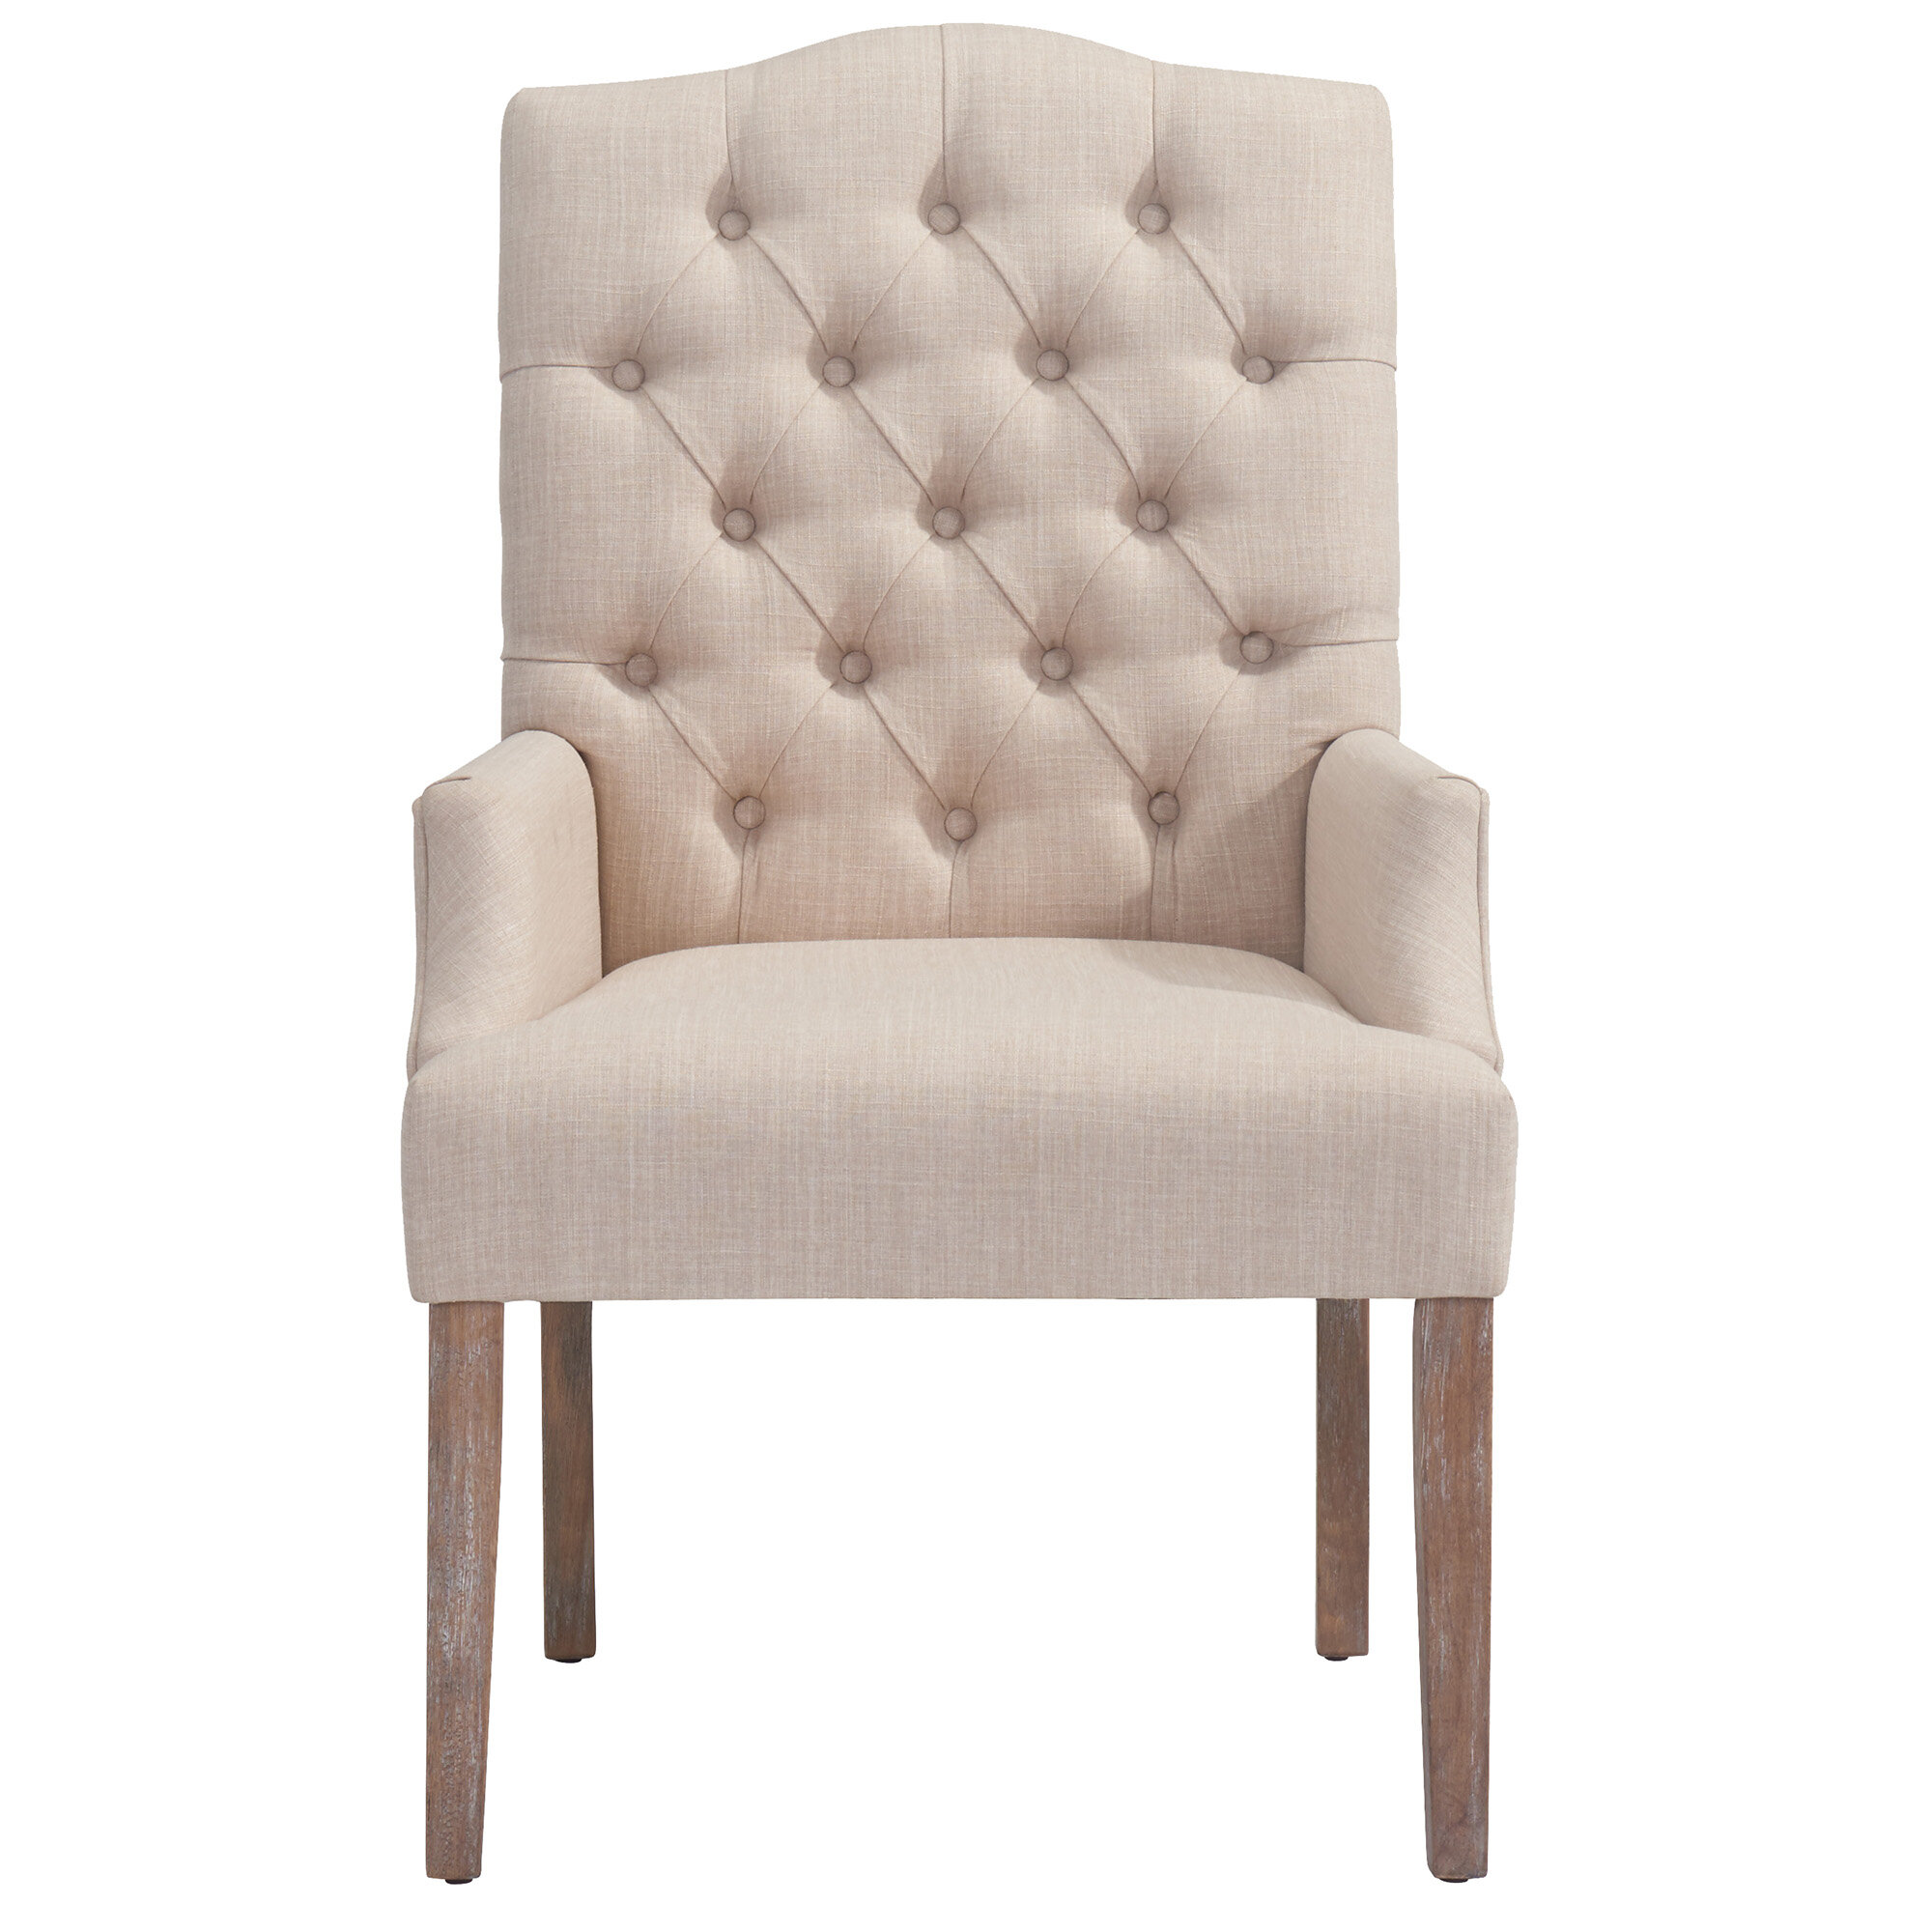 Incroyable !nspire Linen Button Tufted Armchair U0026 Reviews | Wayfair